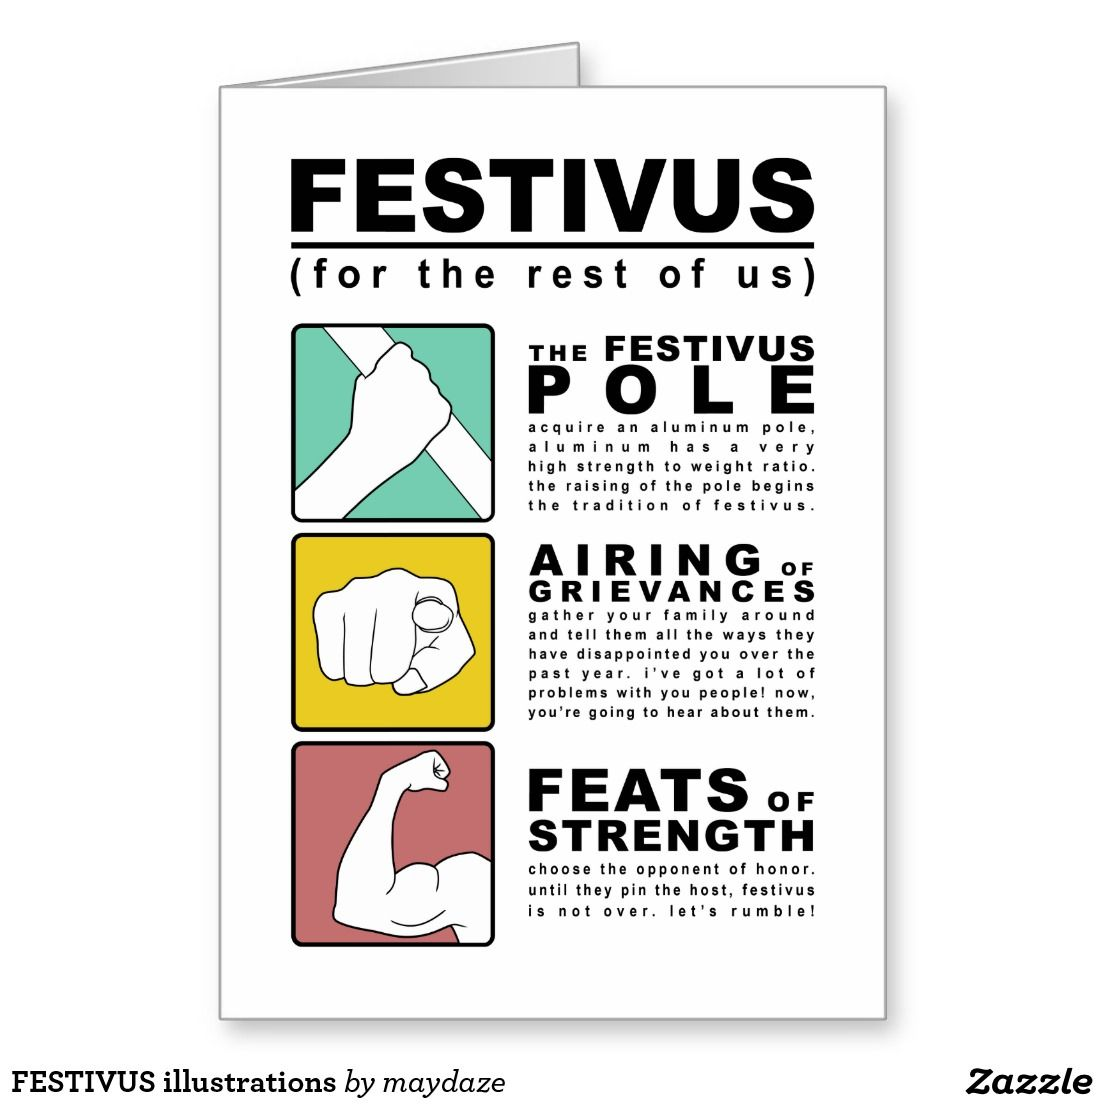 Festivus illustrations greeting card by maydaze asyrum the festivus illustrations greeting card by maydaze asyrum the festivus pole airing of grievances m4hsunfo